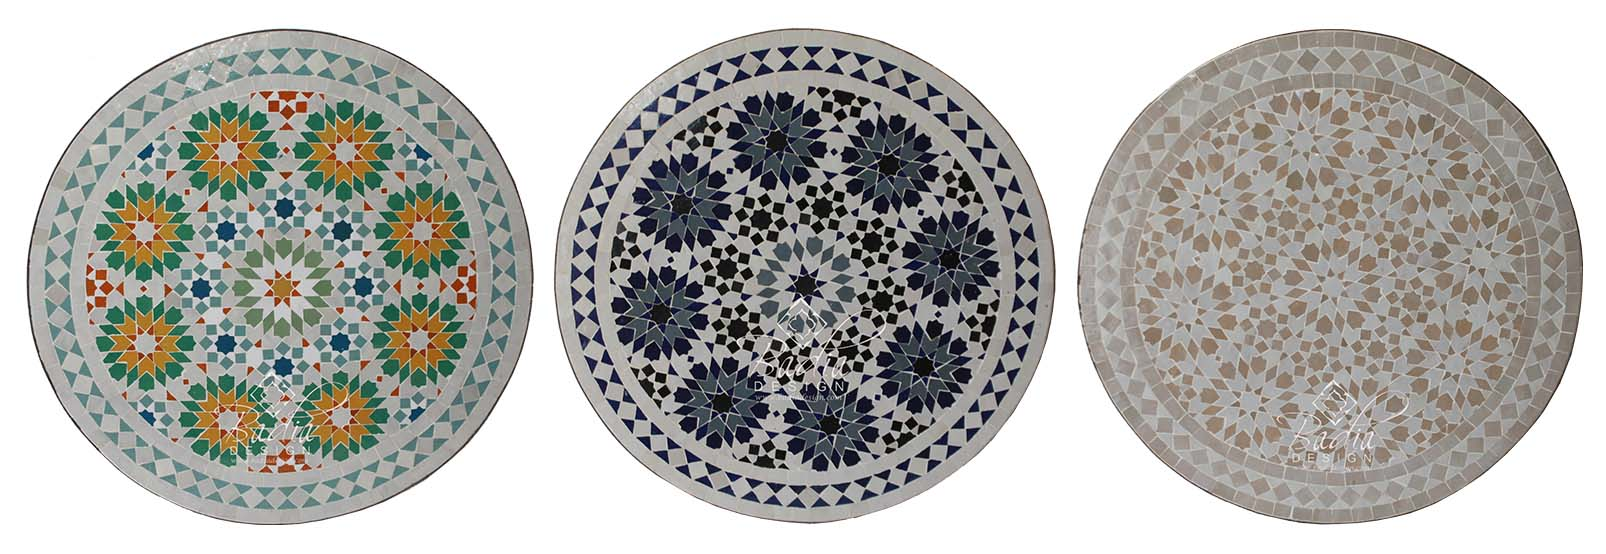 24-inch-round-moroccan-tile-table-top-mtr258.jpg